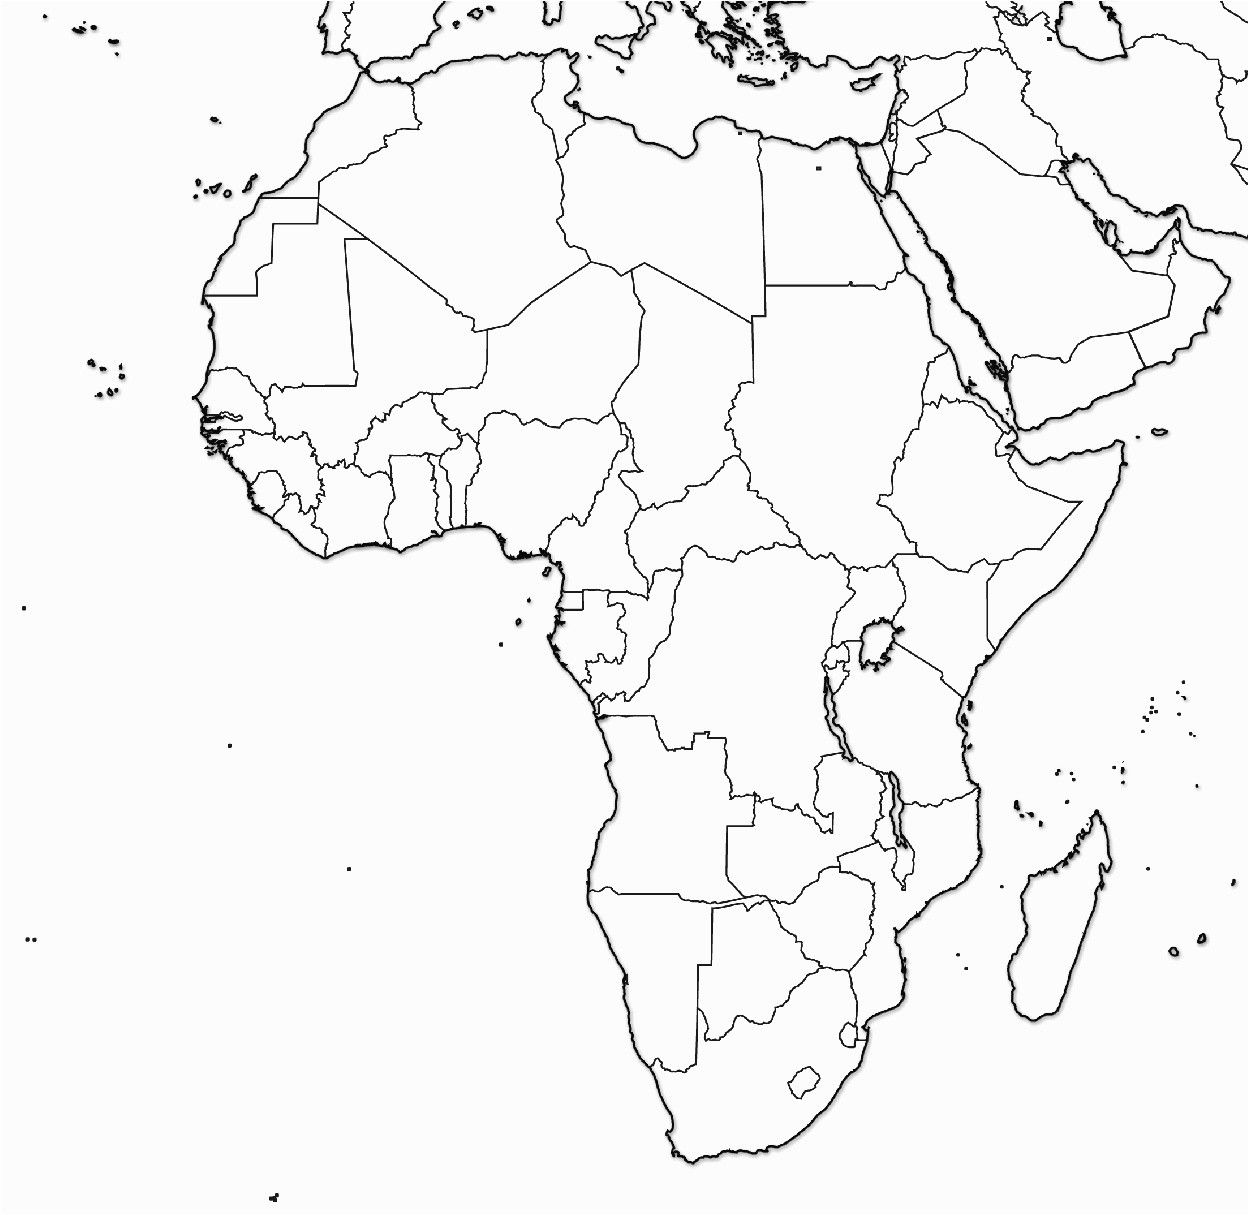 Blank Map Of Eurasia And Africa Comprehensible Blank Map Of Eurasia And Africa Asia High Res Photo